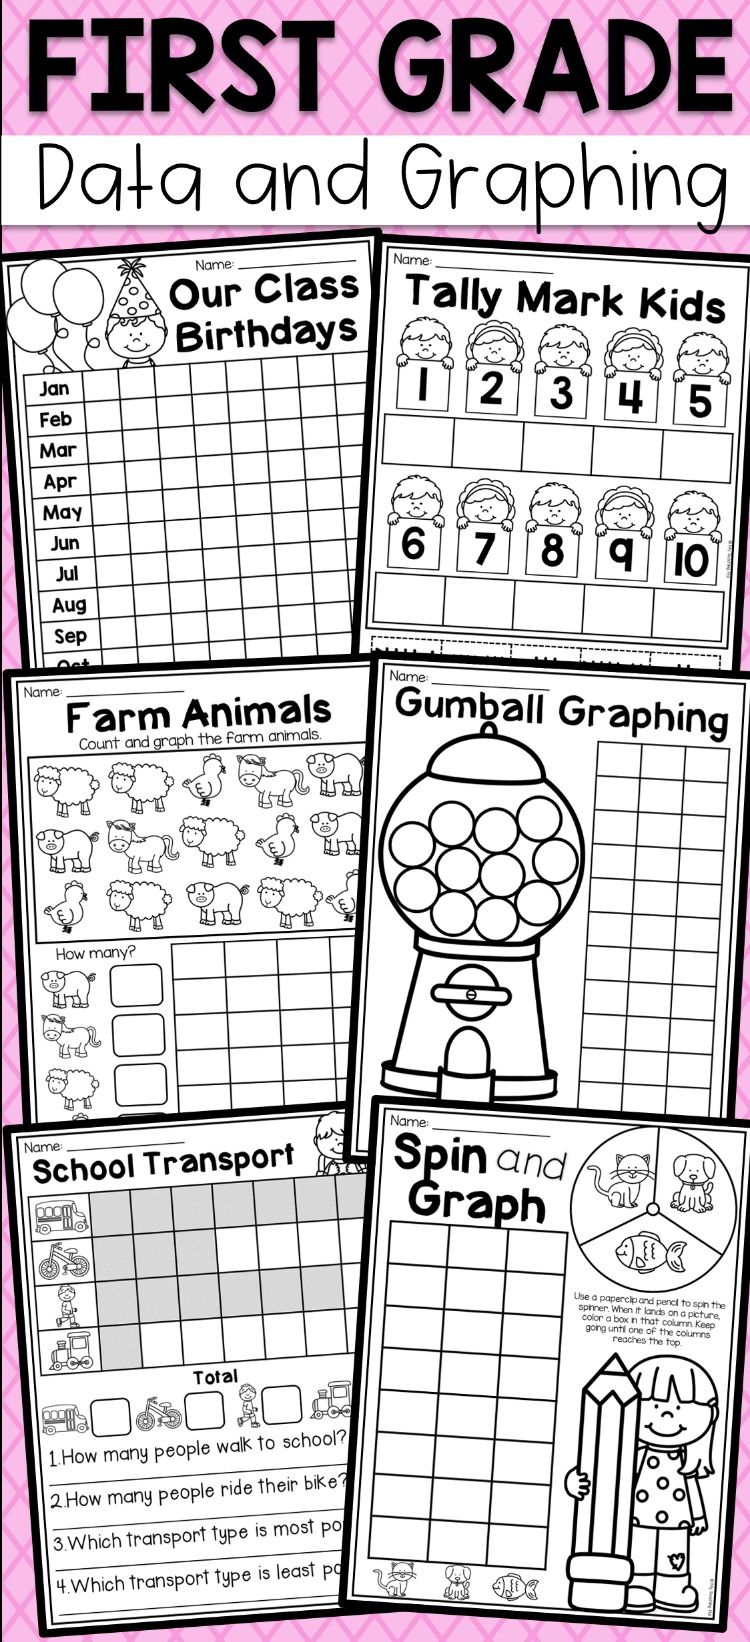 First Grade Data and Graphing Worksheets - Distance Learning   Graphing  first grade [ 1642 x 750 Pixel ]